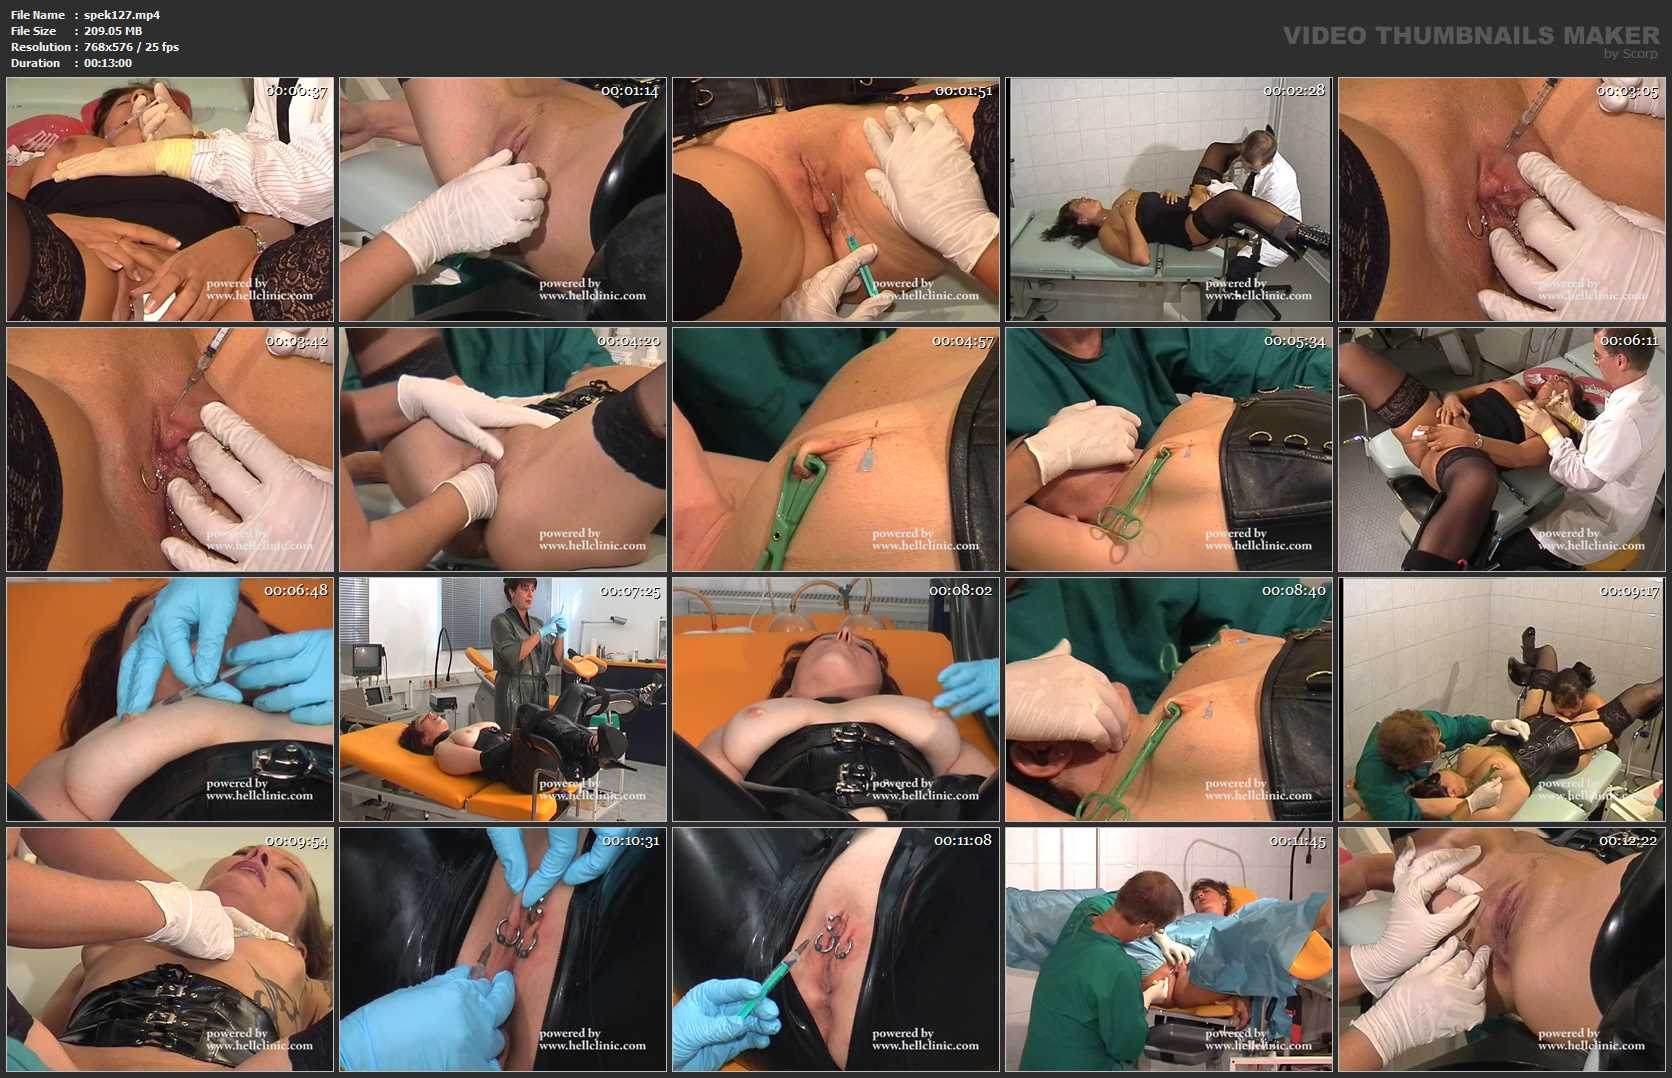 [SPEKULA] Needles and injections [SD][576p][MP4]